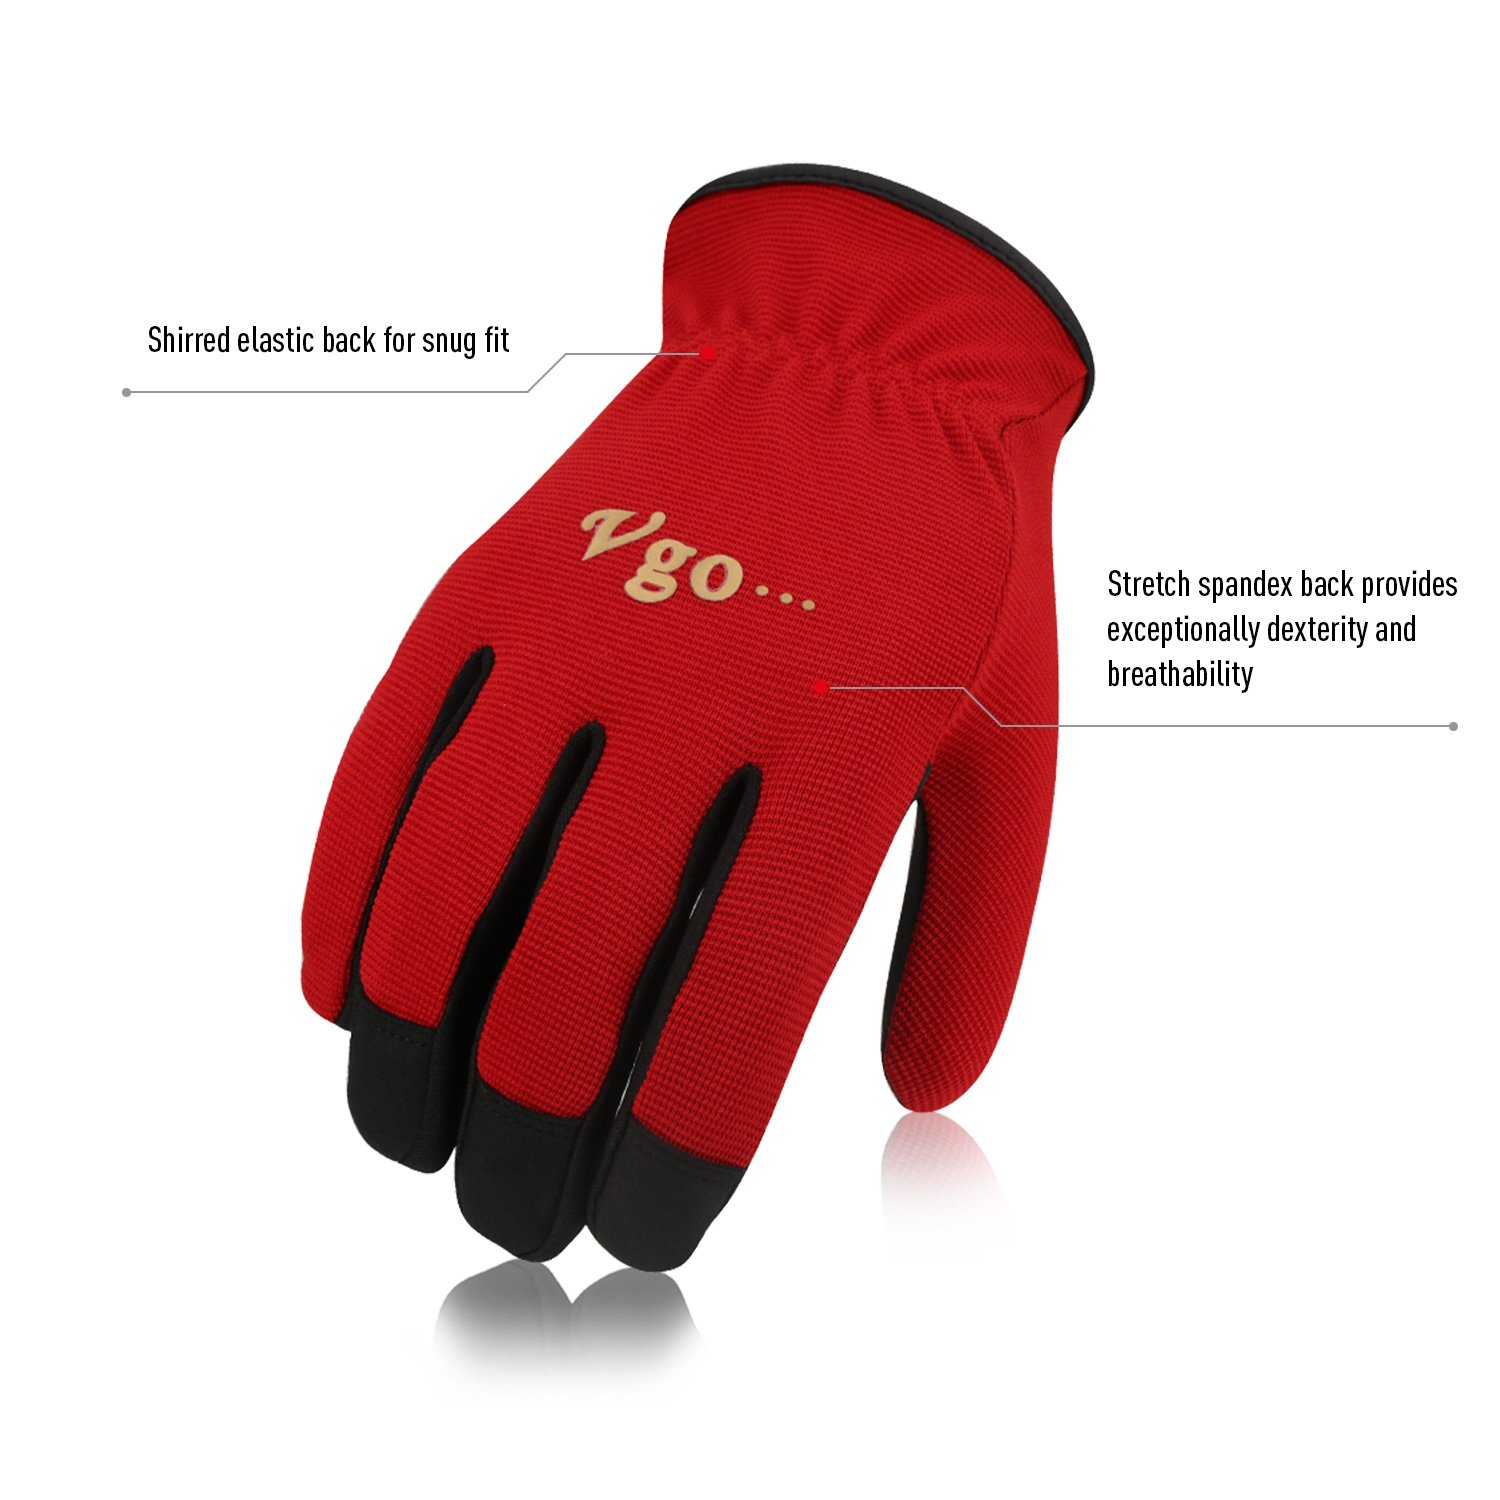 /… Garden and Light Duty Work Gloves 5 Colours, Size 8//M, AL8736 Multifunction Vgo Glove 5 Pairs Pack Artificial Leather Work Gloves